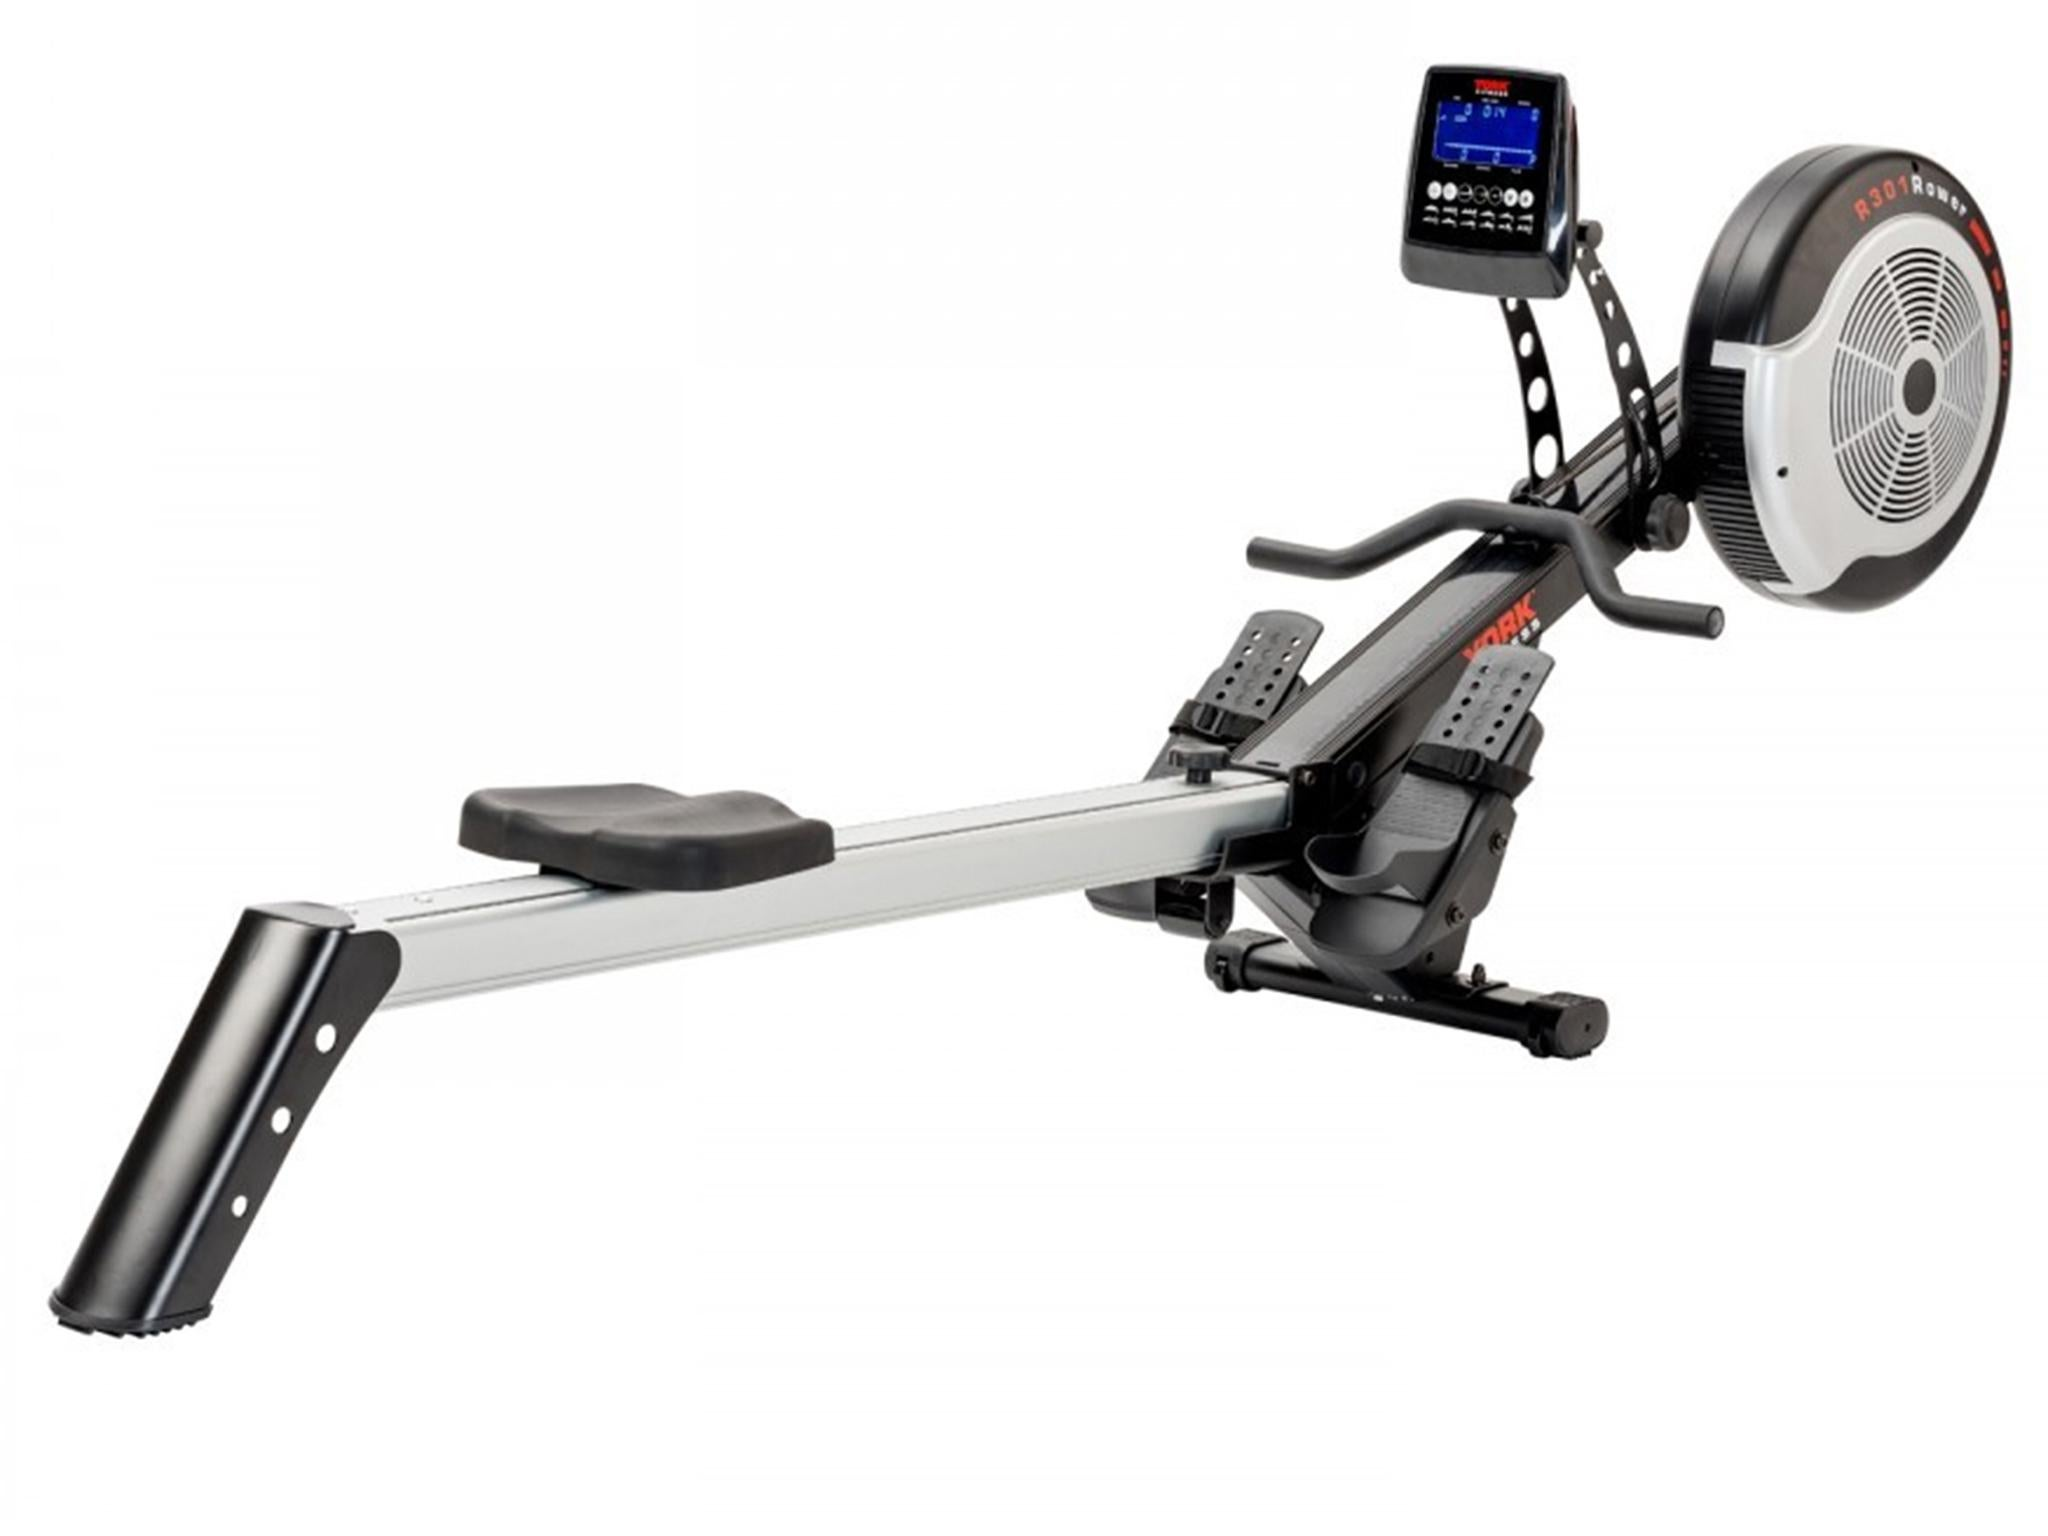 7 best home rowing machines | The Independent